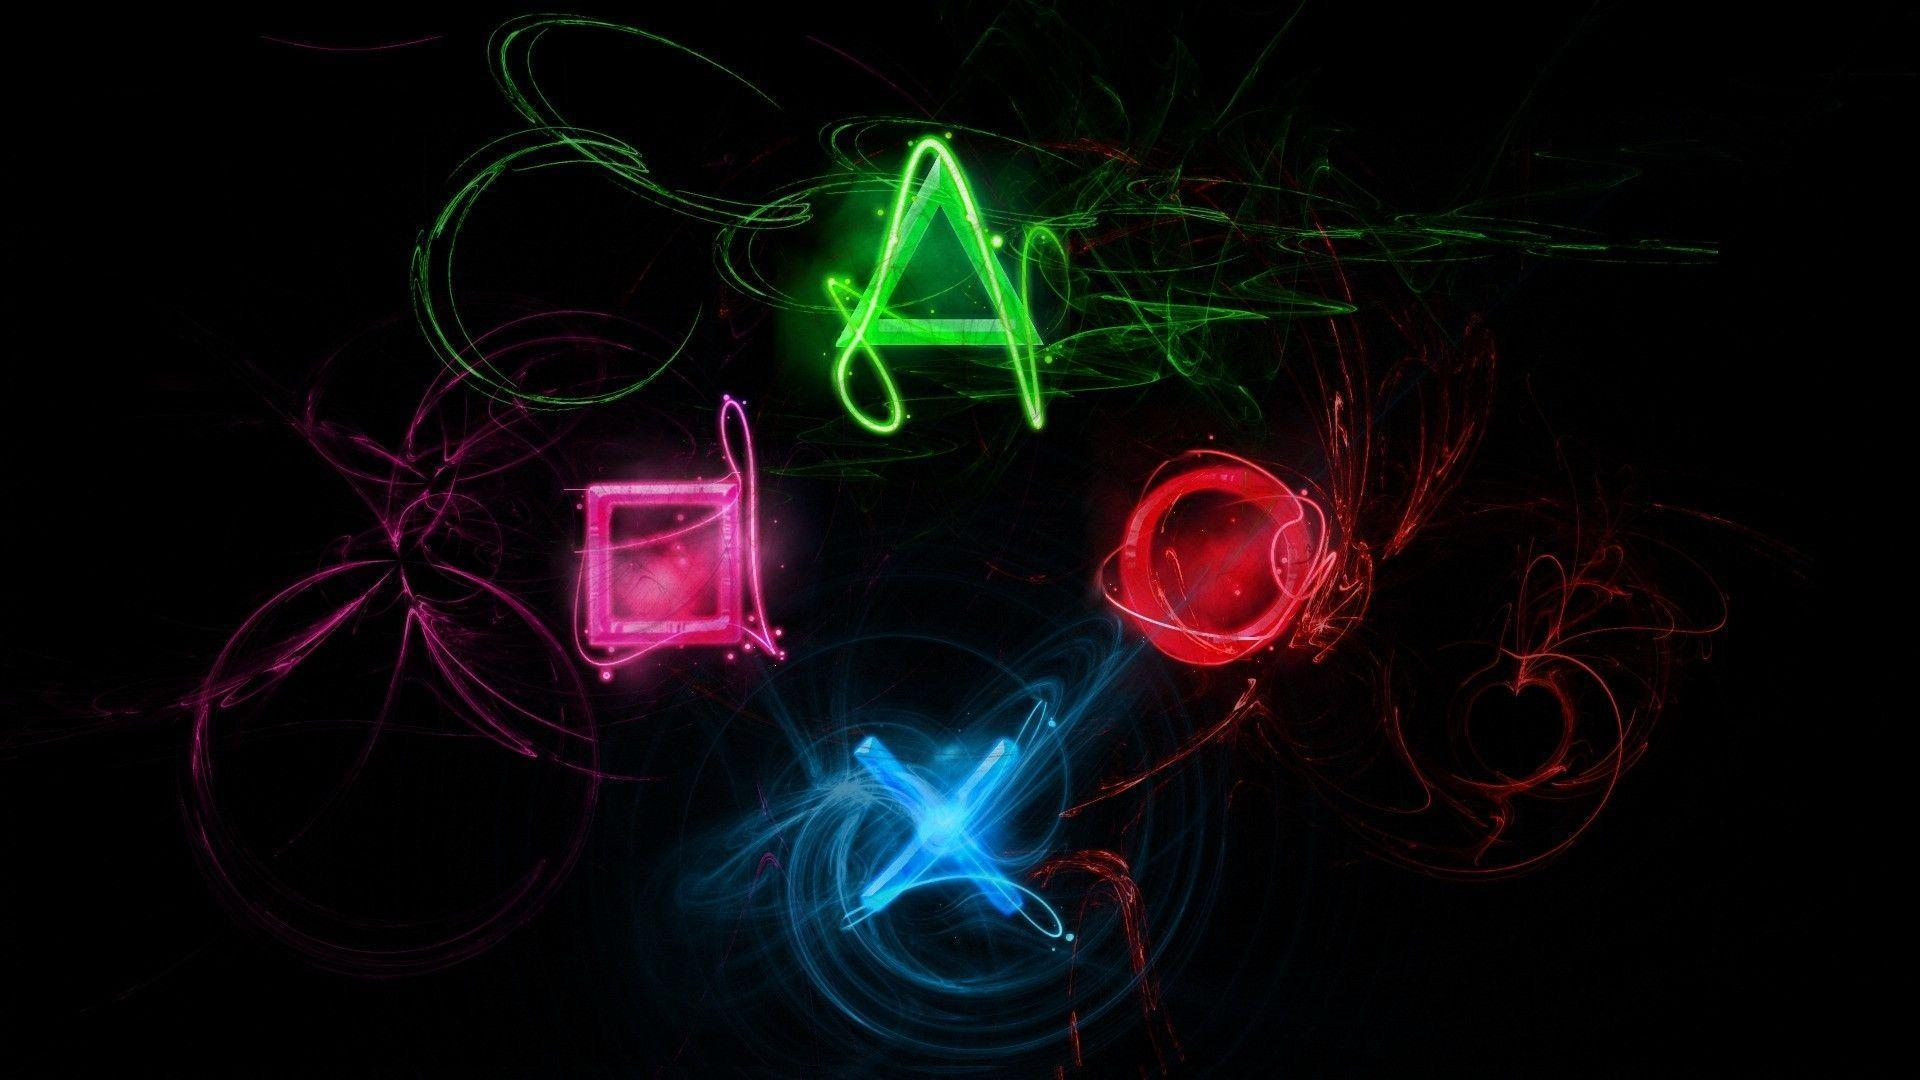 Ps3 hd wallpapers wallpaper cave wallpapers for ps3 wallpapers hd 1080p voltagebd